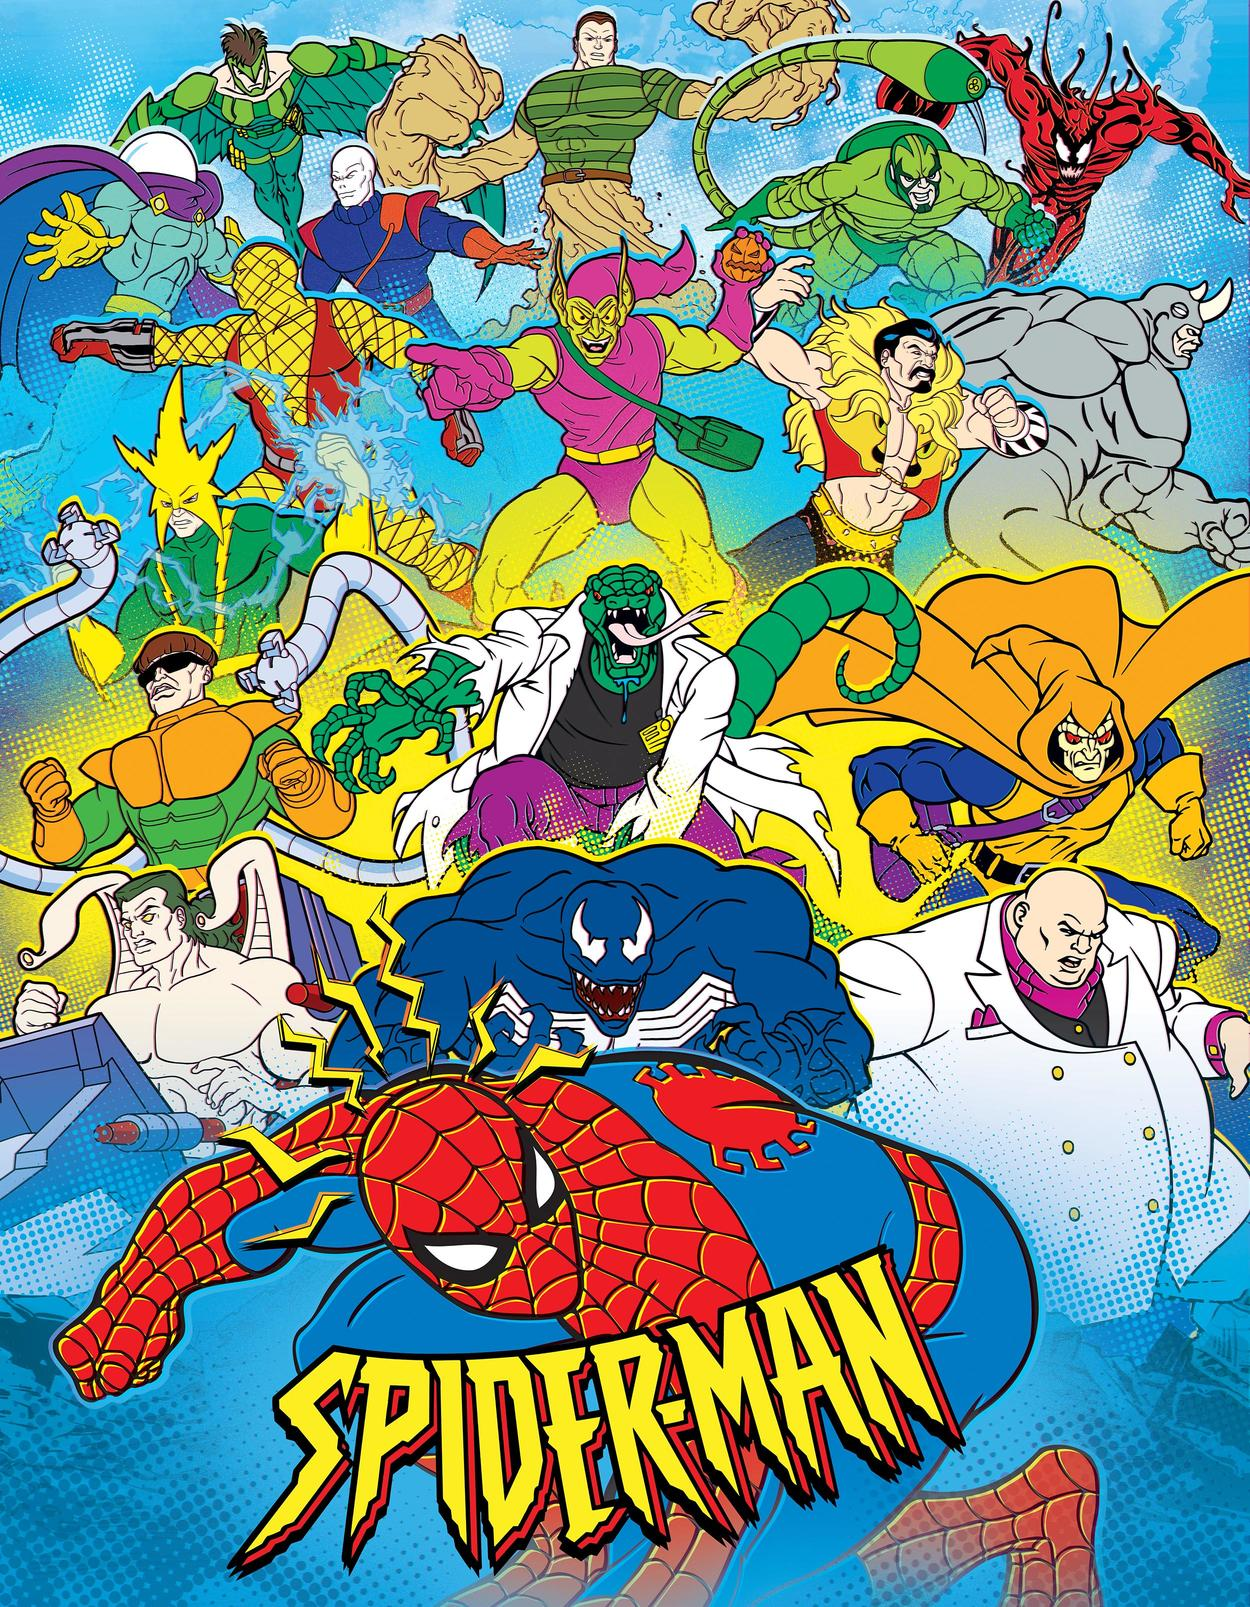 Spider-Man cartoon poster